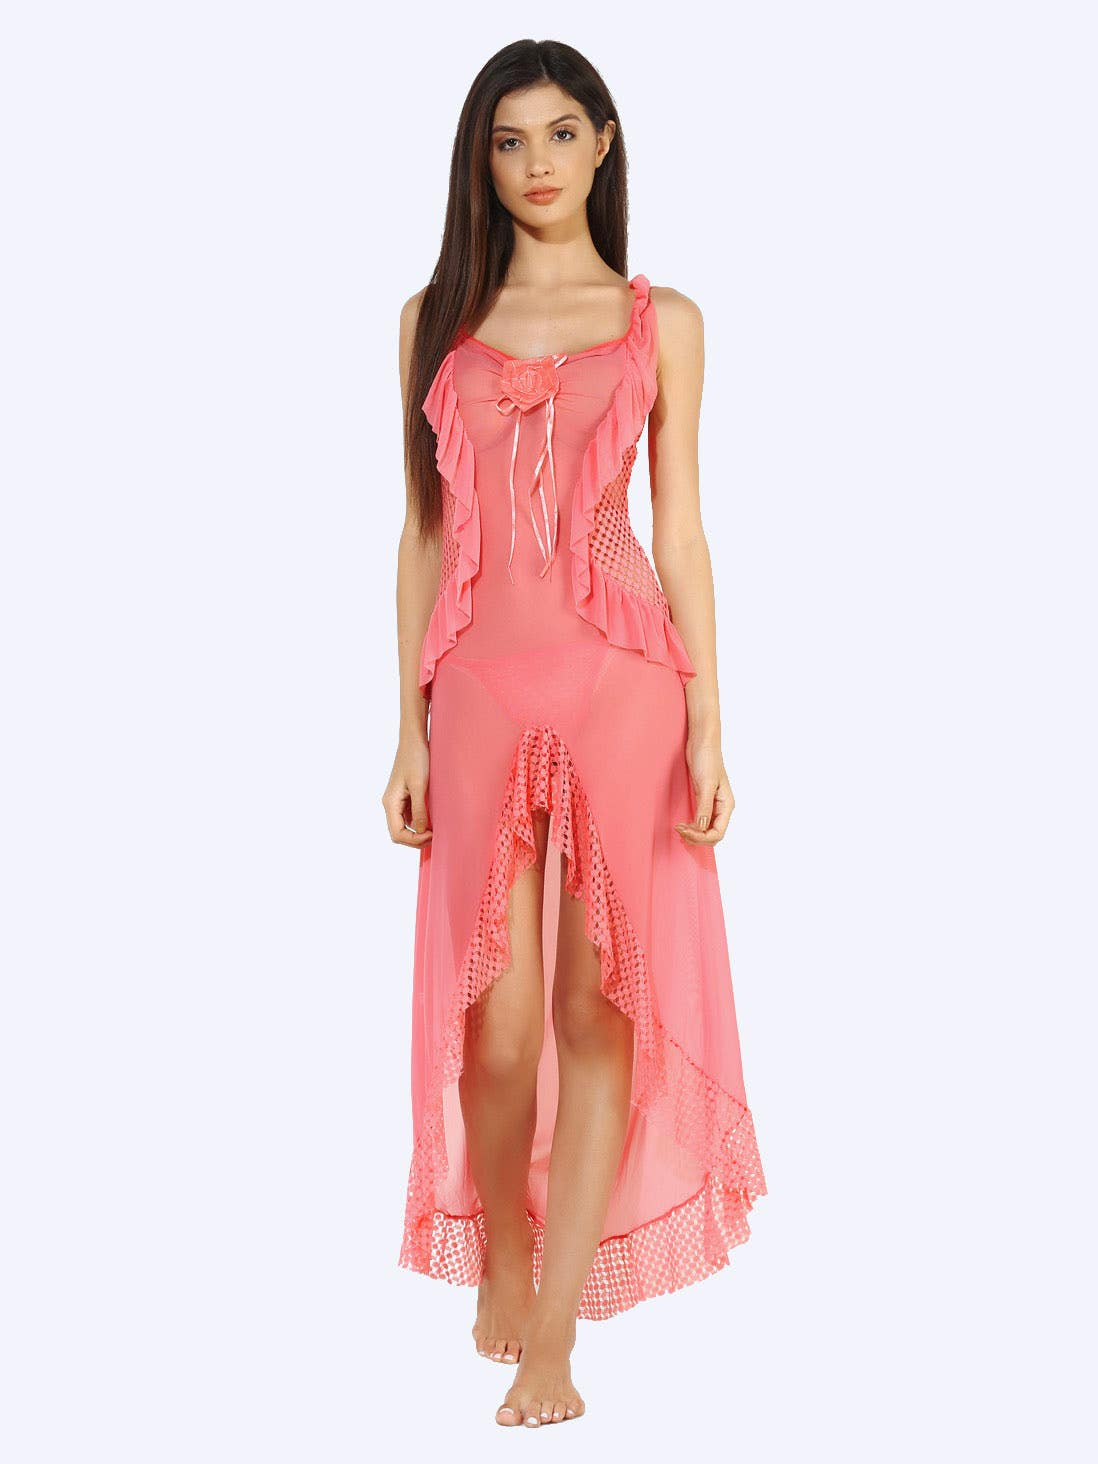 8dc41a26a85 Shyle Coral Pink Mesh with Net and Frills Attached Babydoll